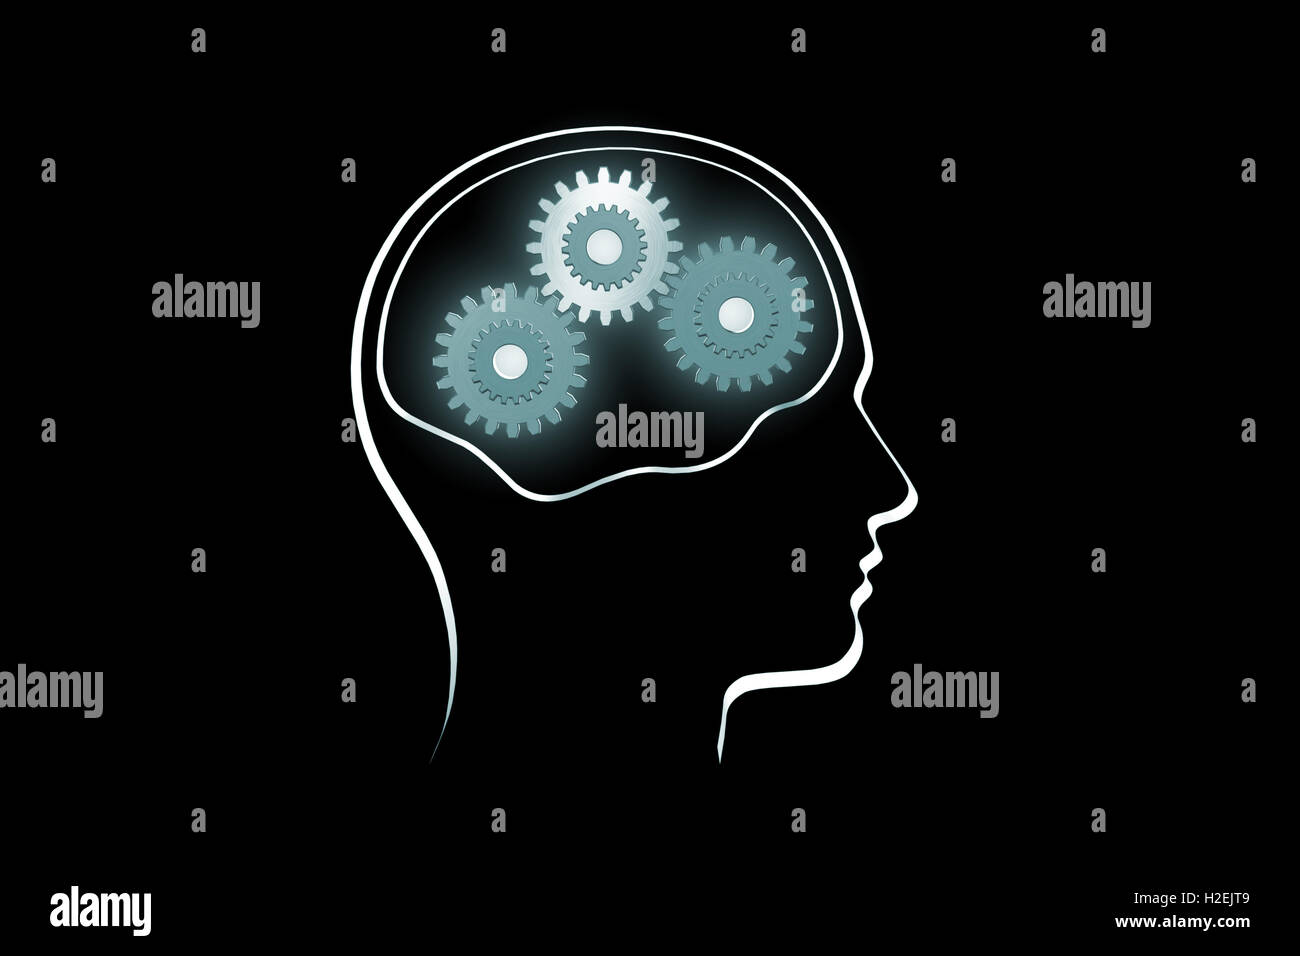 Background image rotate - Stock Photo The Contour Of A Human Head On A Dark Background Rotate The Gears The Symbol Of Mental Work 3d Illustration Render